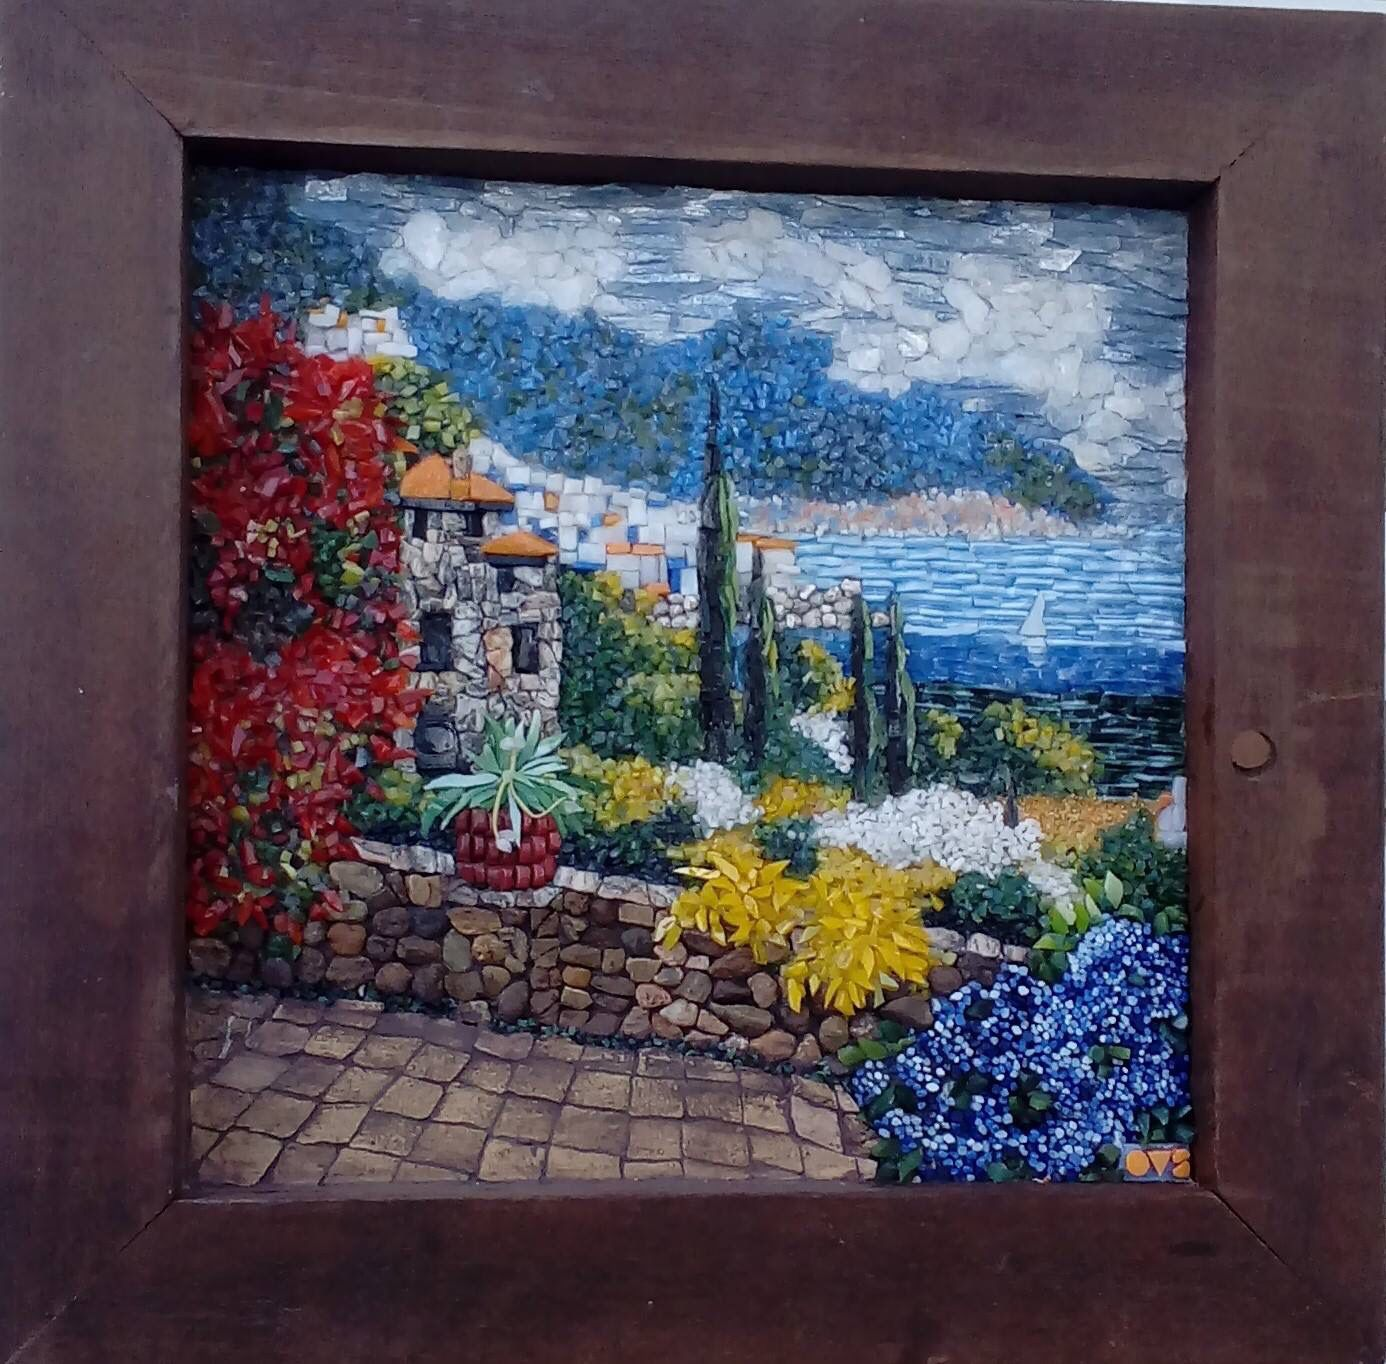 Pin by karen st marie on mosaics pinterest mosaics glass and clay